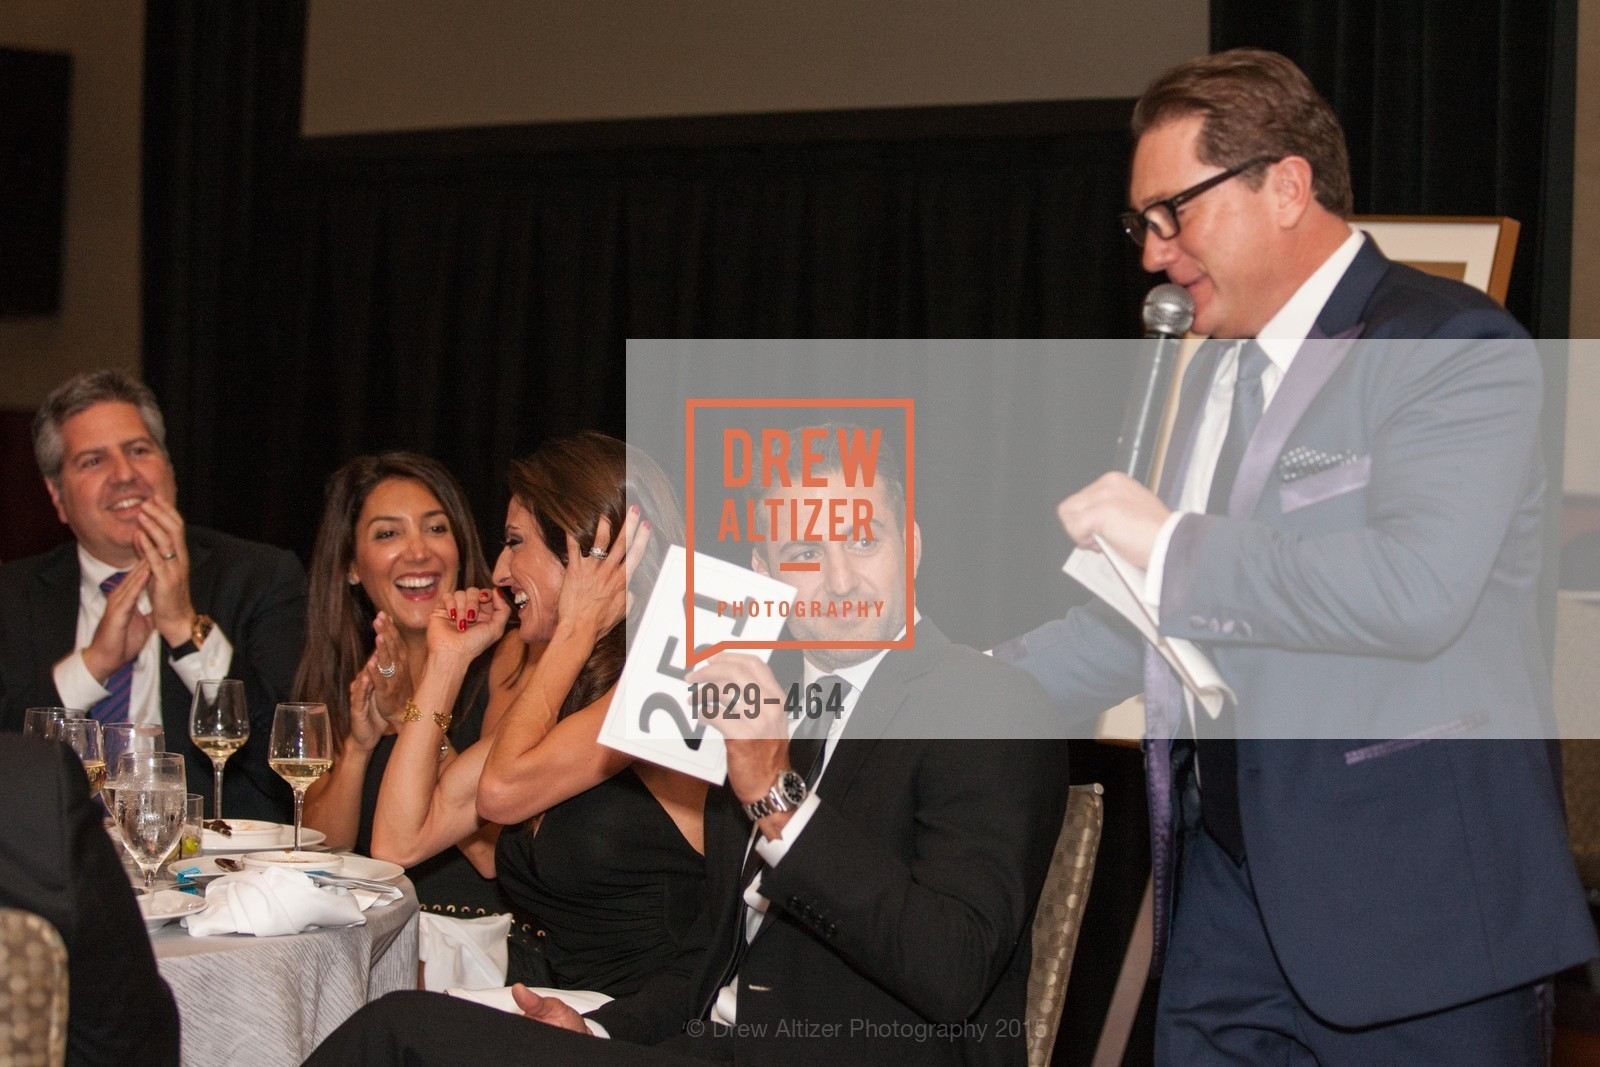 Liam Mayclem, Operation Smile Presents THE SAN FRANCISCO 2015 SMILE GALA, InterContinental Hotel, November 7th, 2015,Drew Altizer, Drew Altizer Photography, full-service agency, private events, San Francisco photographer, photographer california